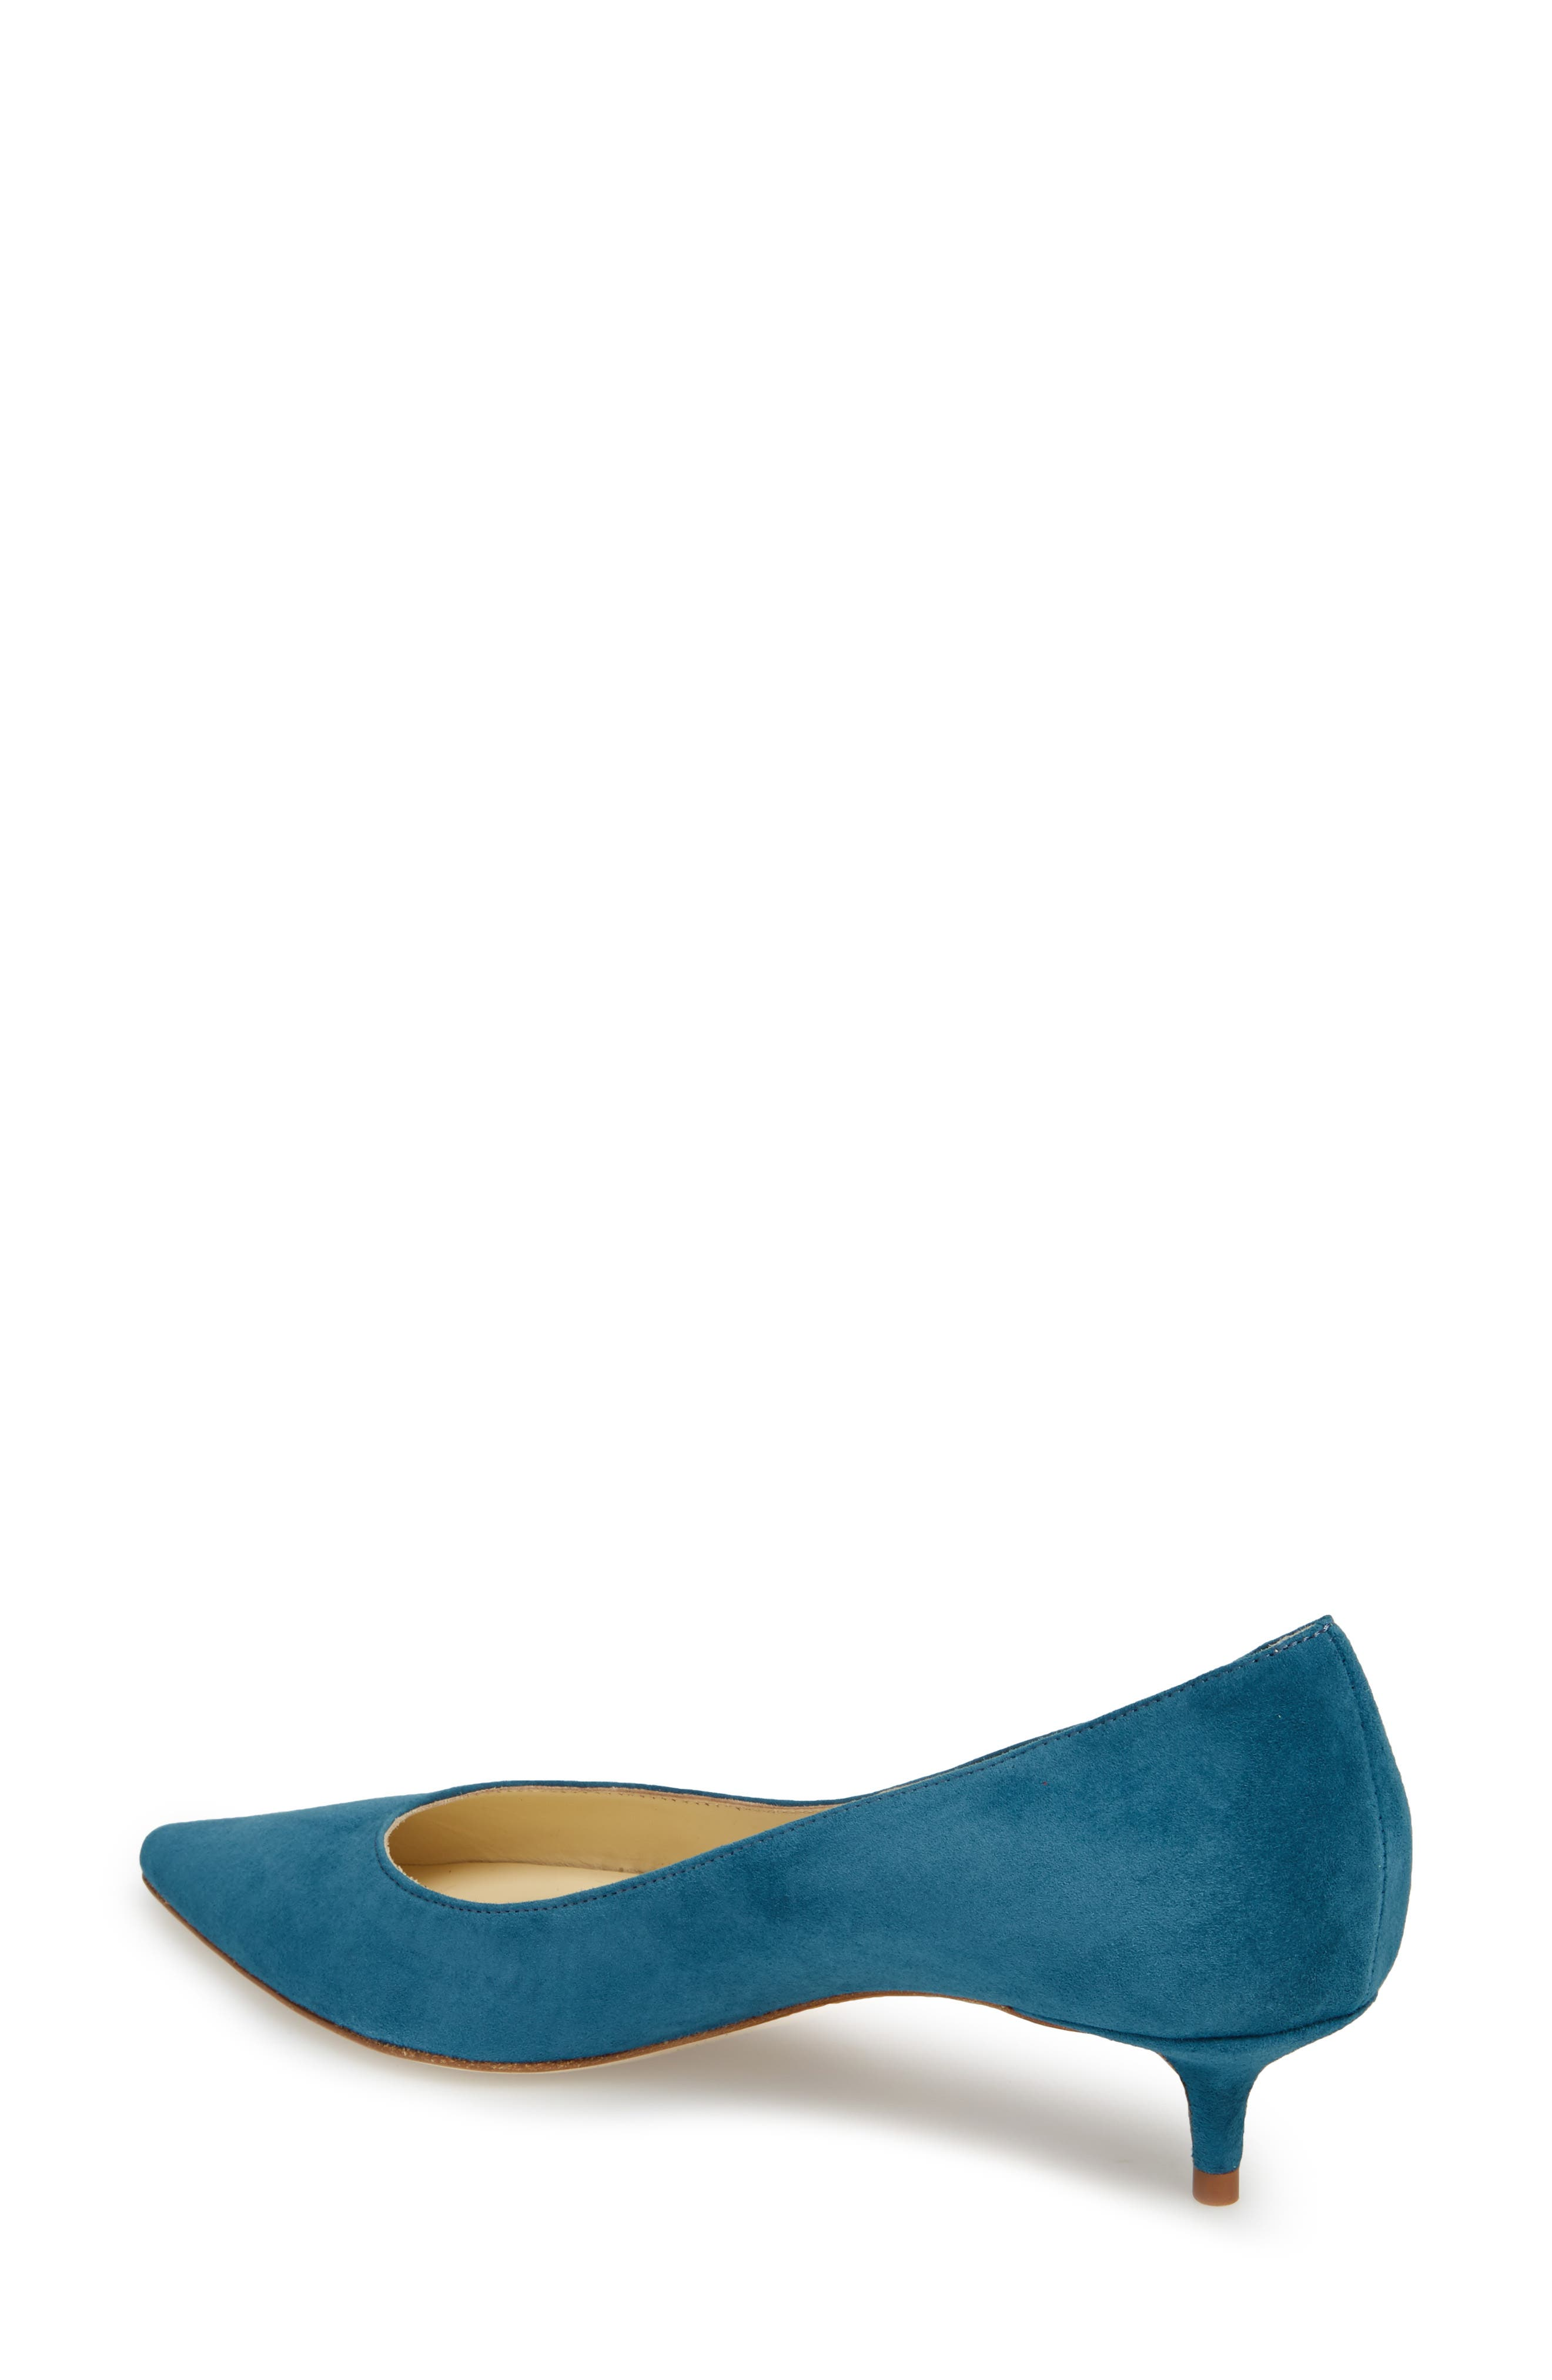 Butter Born Pointy Toe Pump,                             Alternate thumbnail 12, color,